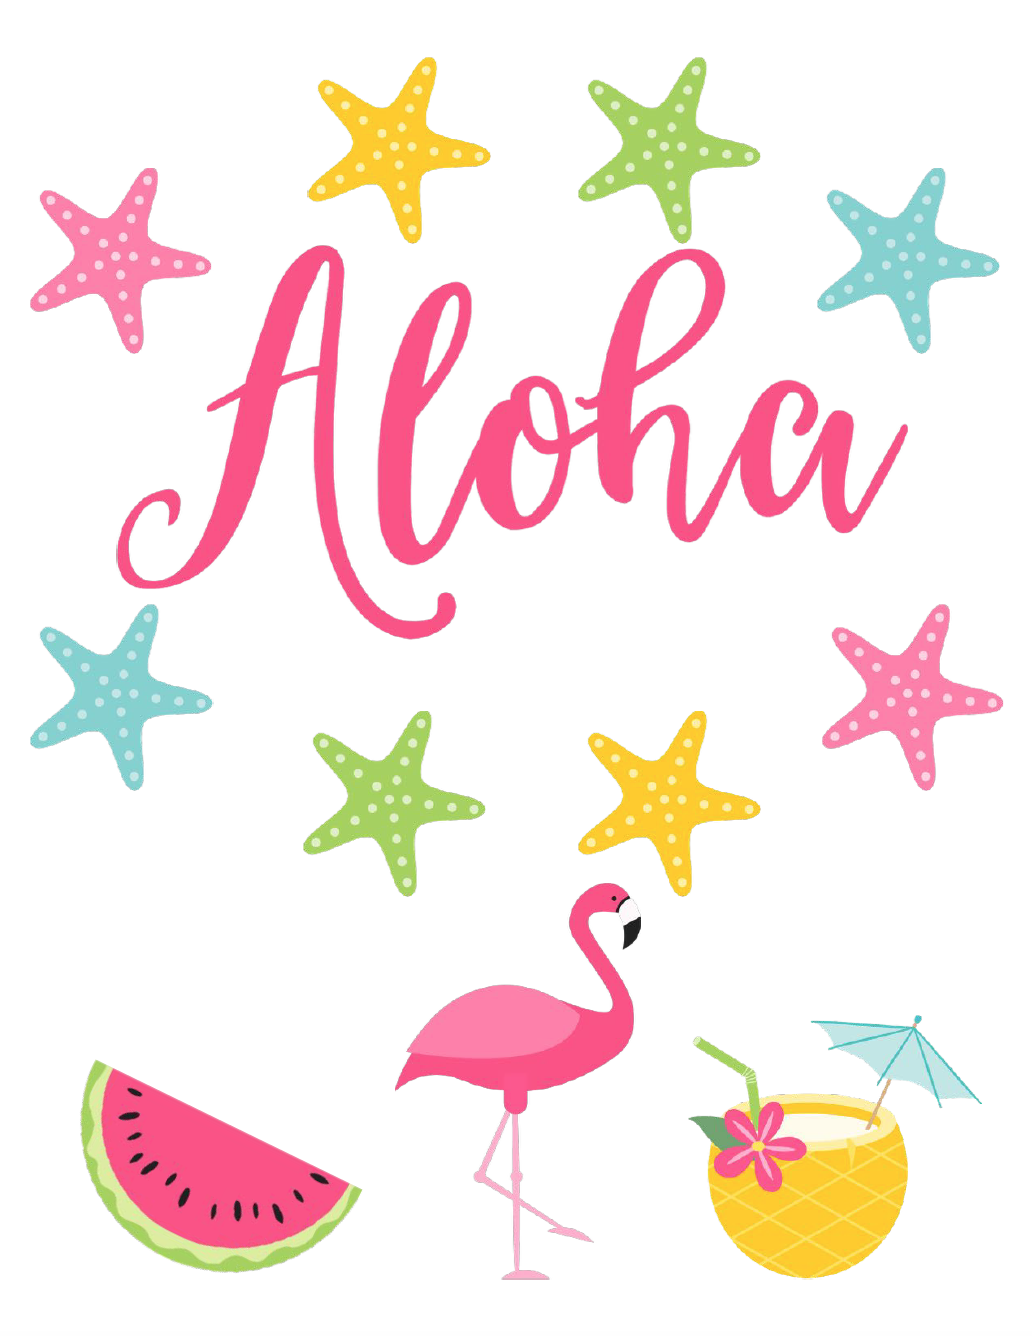 Aloha Free Summer Printable. Celebrate summer and brighten up your decor with 4 free summer printables.